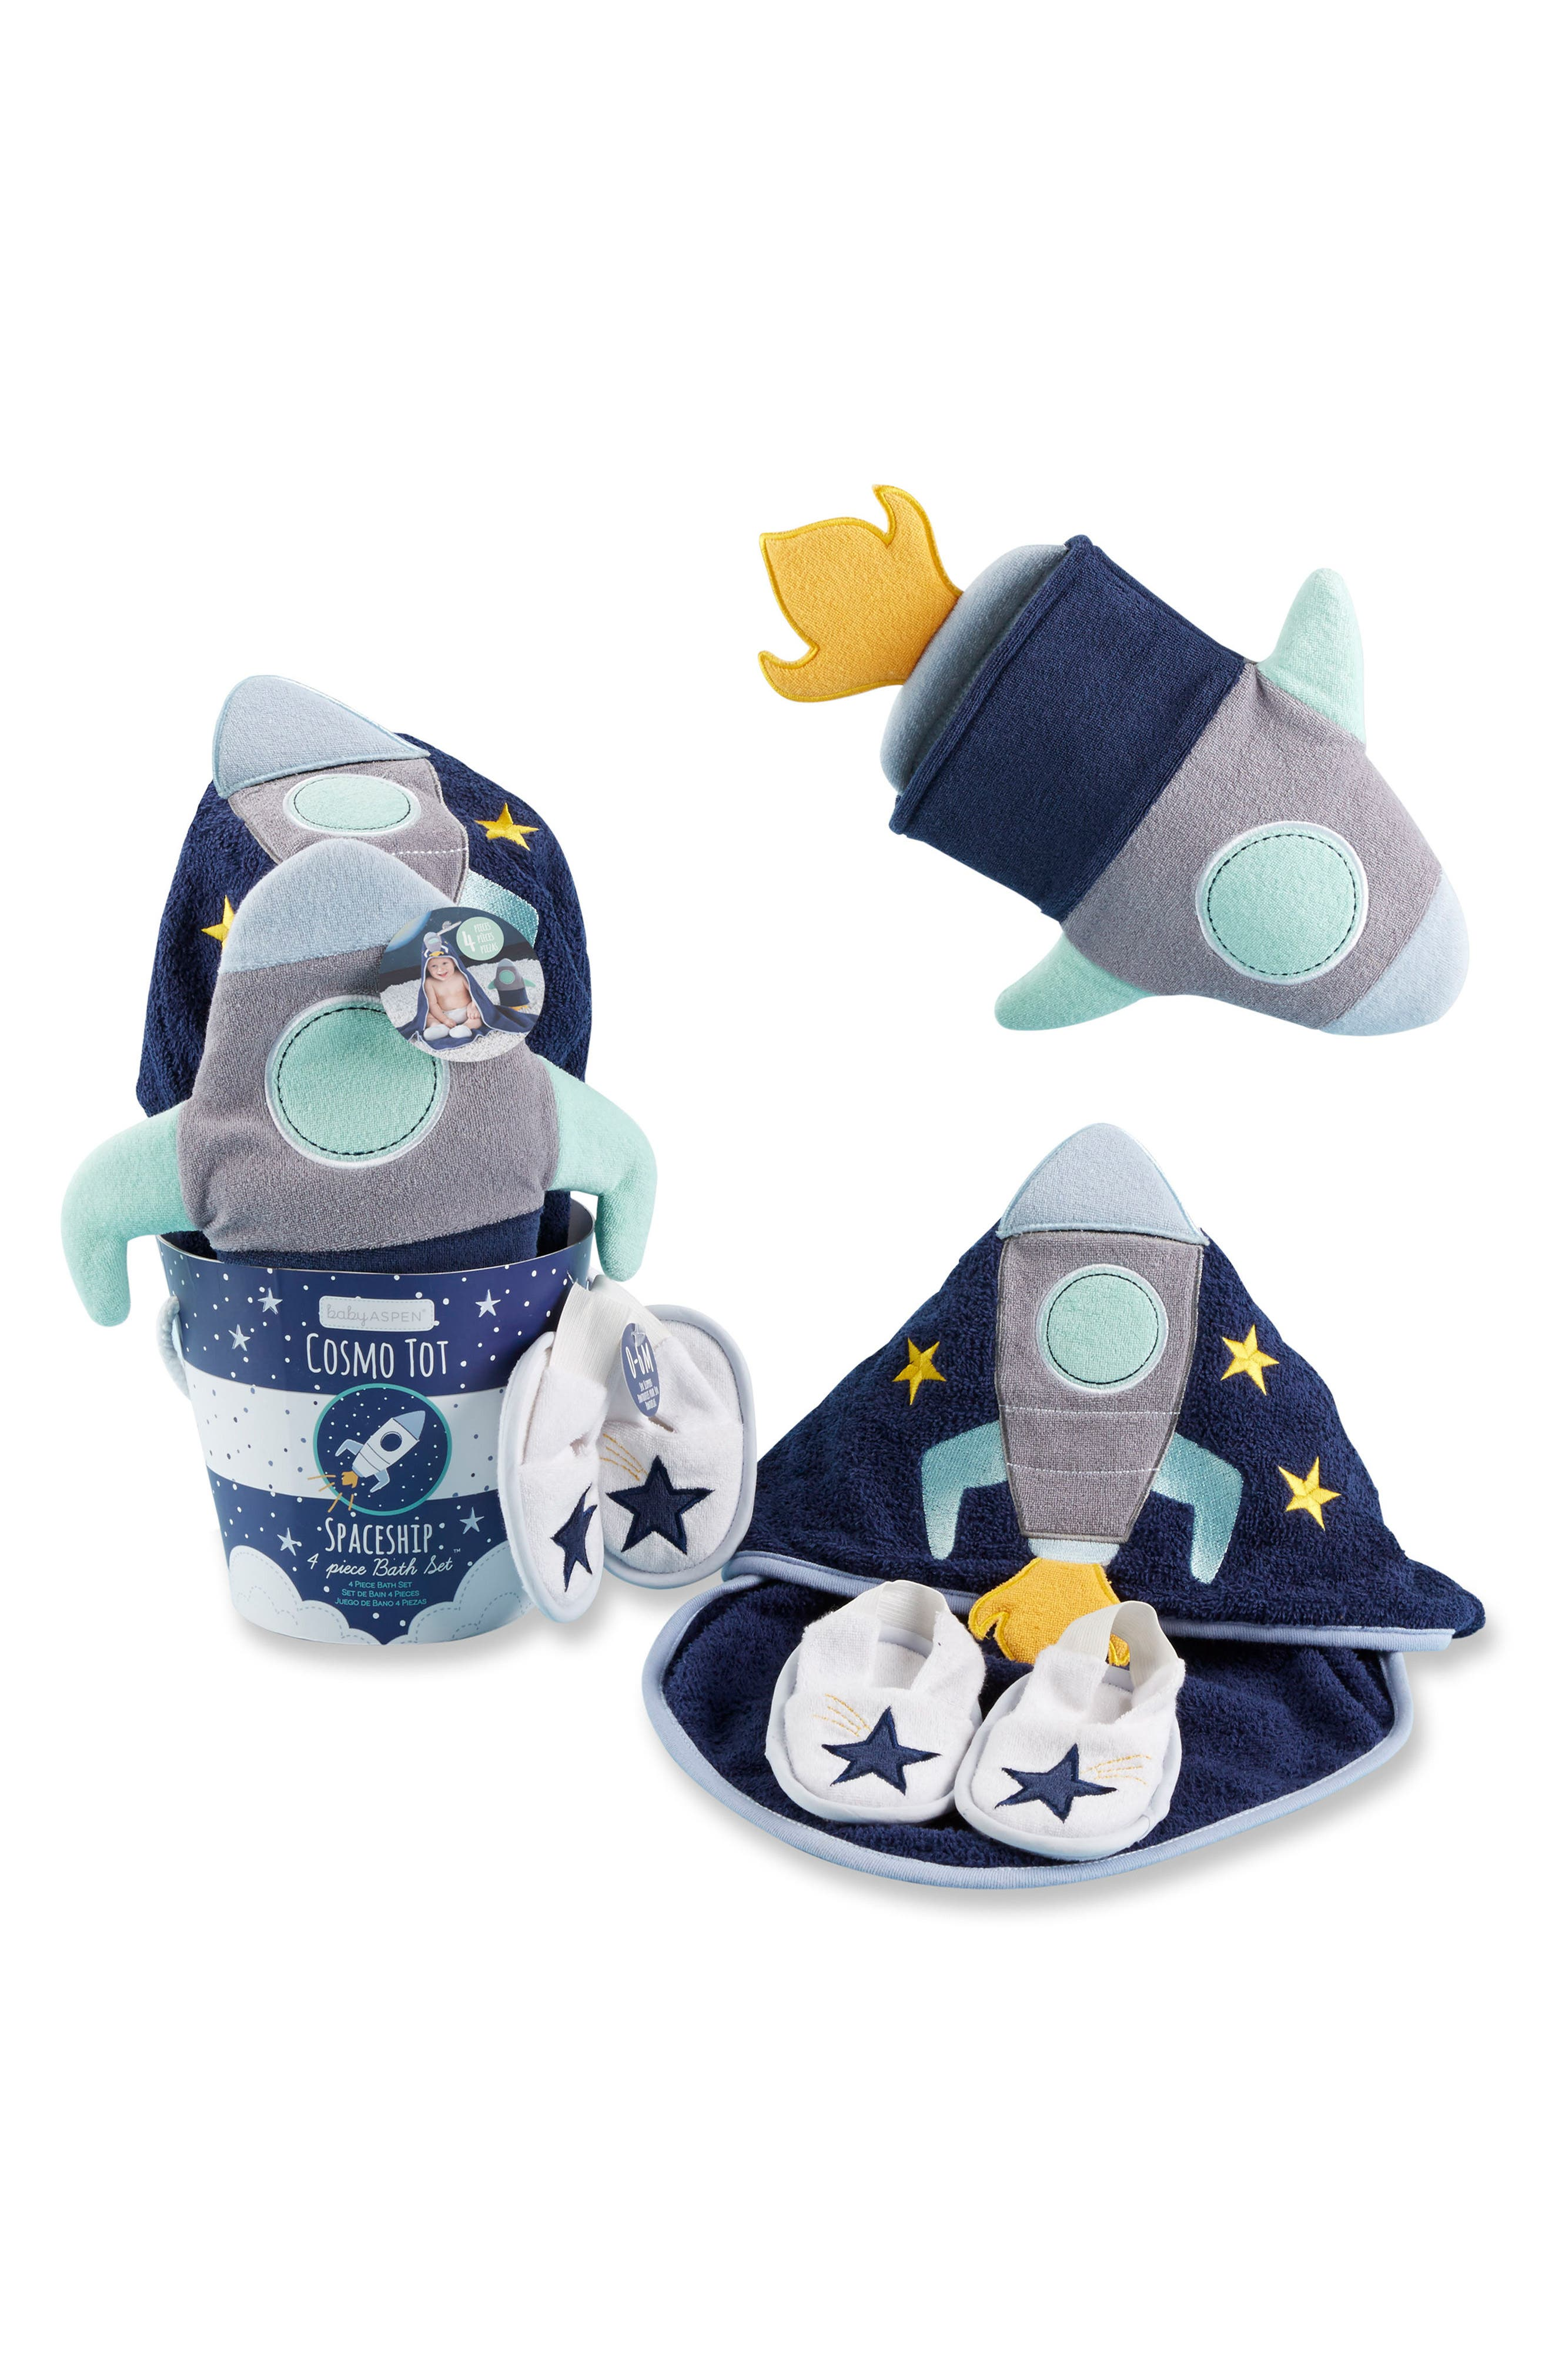 Cosmo Tot 4-Piece Bath Gift Set,                             Main thumbnail 1, color,                             BLUE/ YELLOW/ MINT